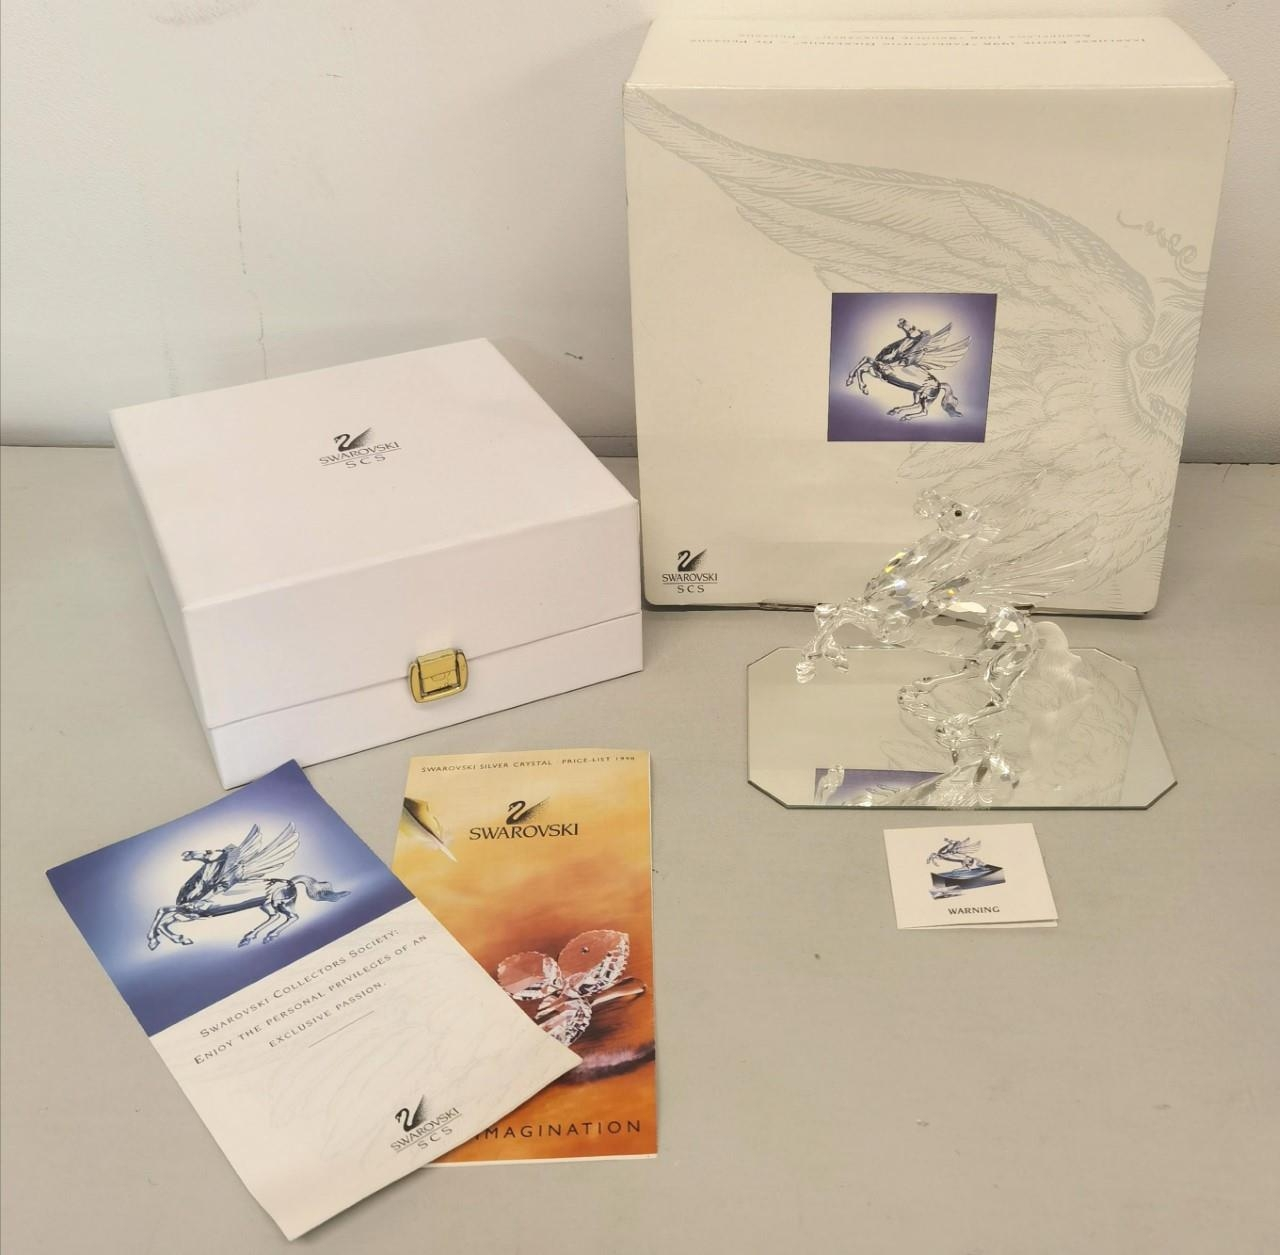 A Swarovski Crystal Annual Edition 1998 'Fabulous Creatures - The Pegasus' A/F with box and - Image 5 of 6